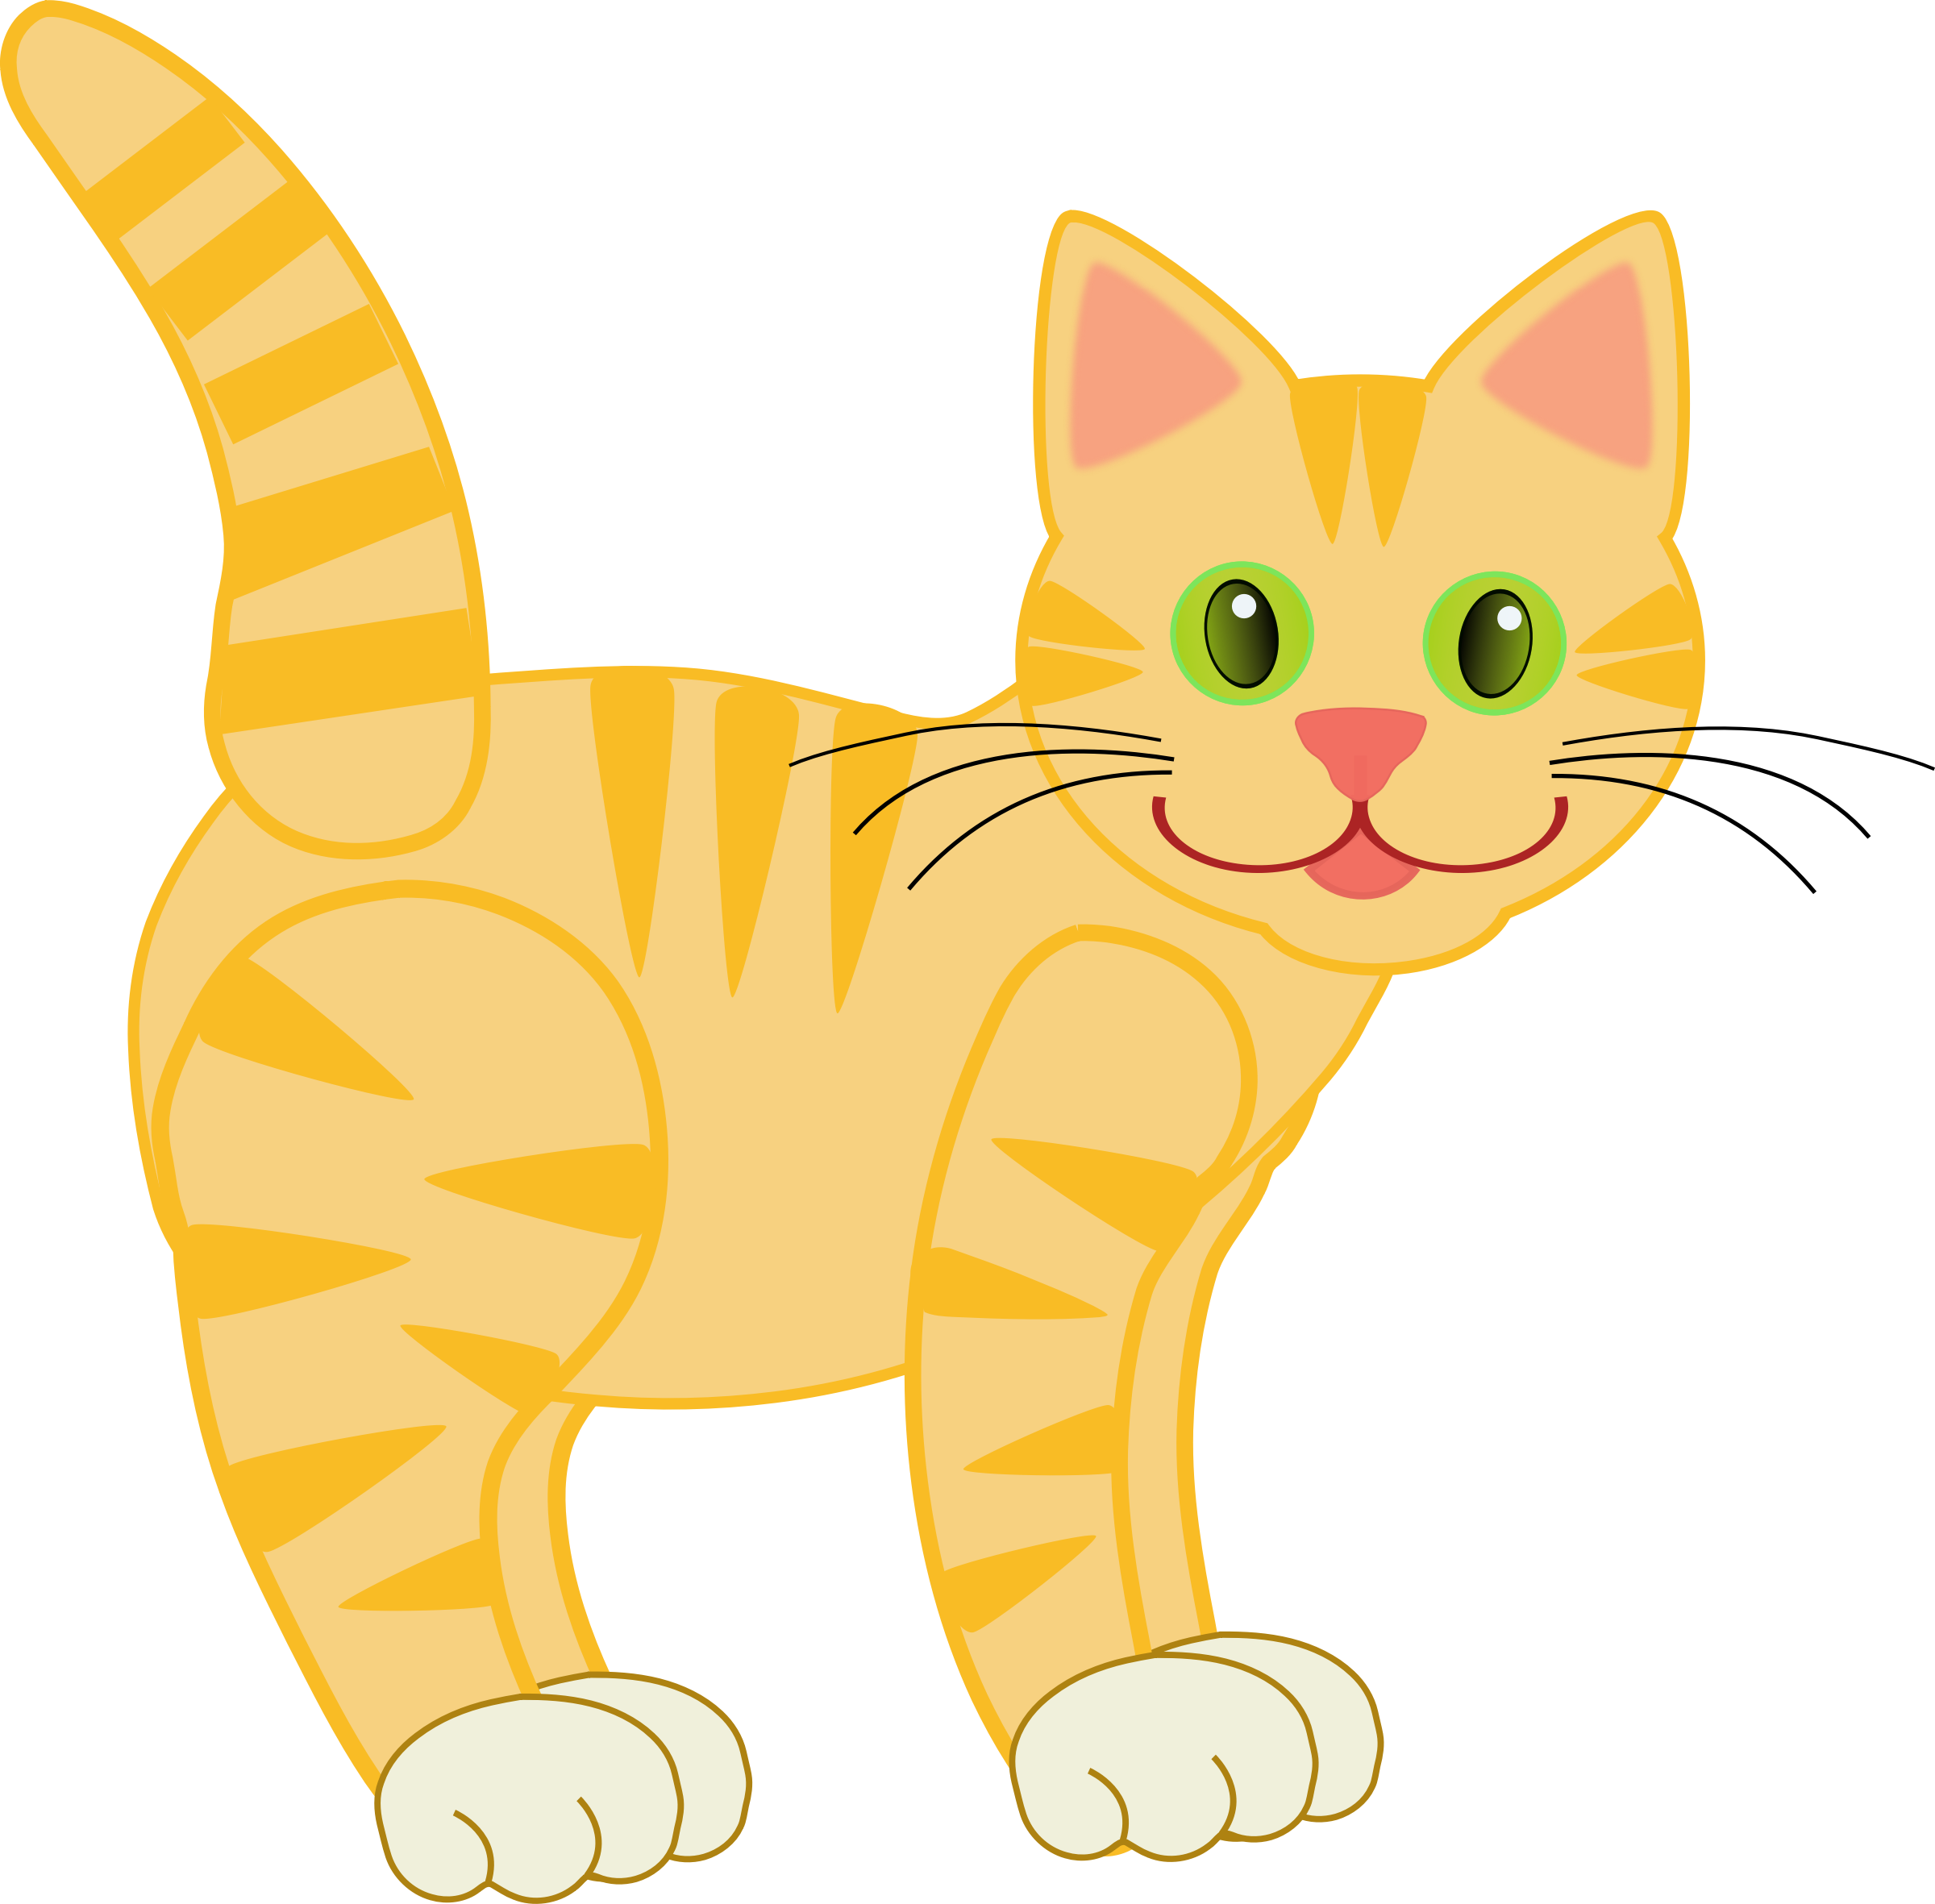 Balls clipart cat. Yellow tiger four legs